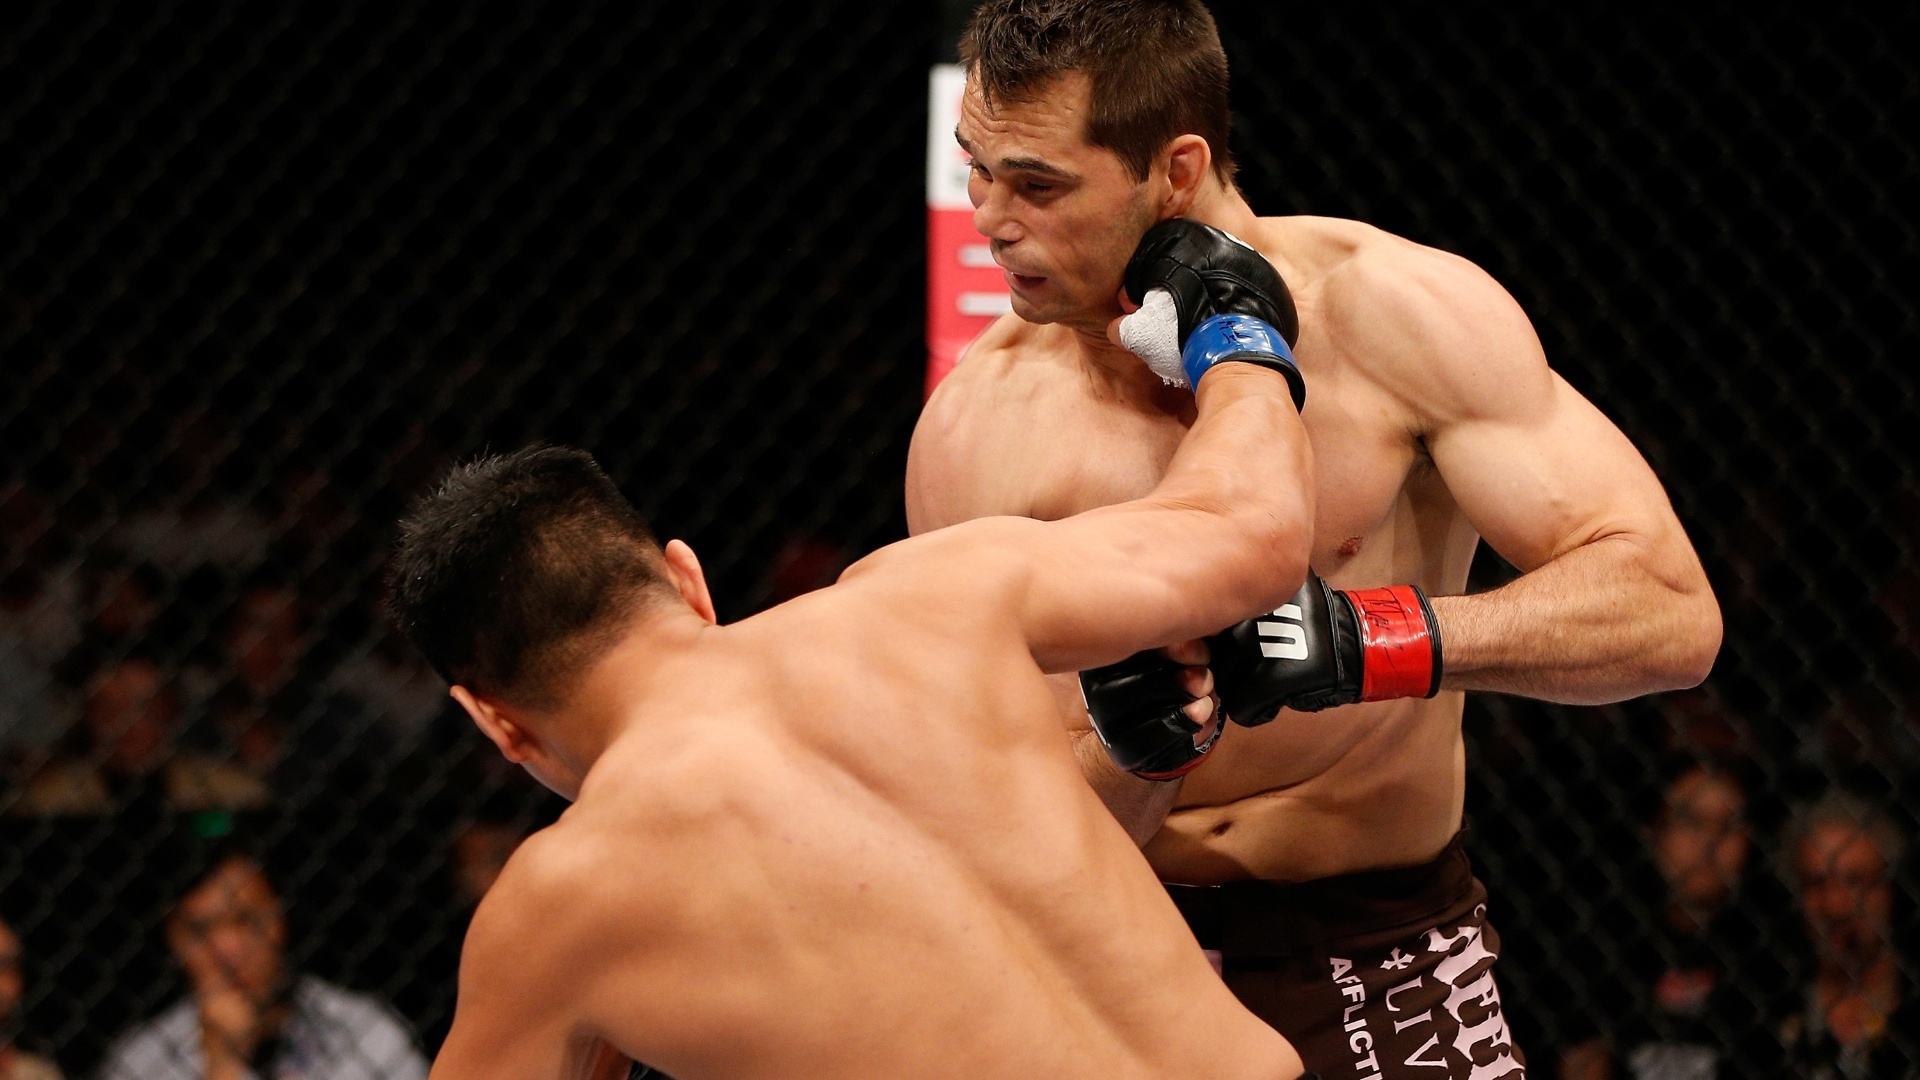 Cung Le acerta timo soco e nocauteia Rich Franklin no UFC da China, em Macau